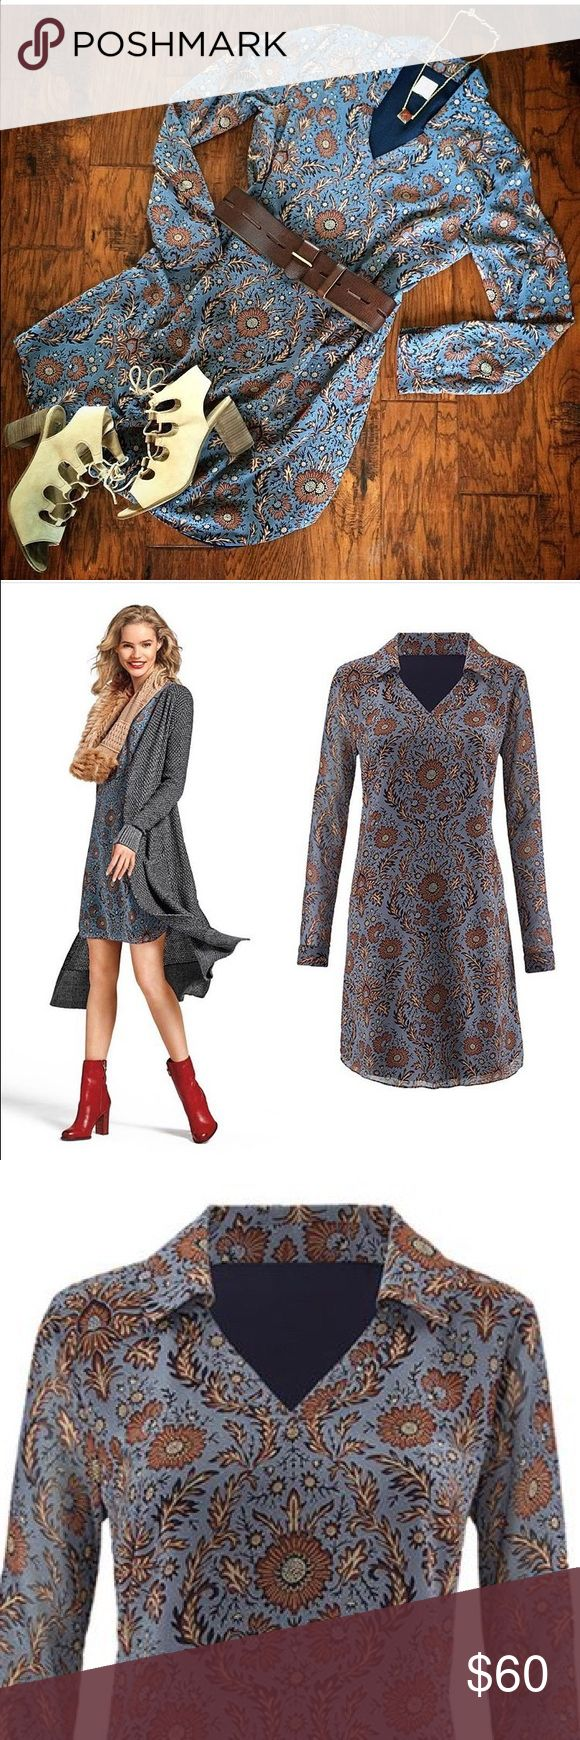 NEW Cabi Provincial Dress 👗 Fall '16 bestseller Super cute shift dress with flattering v-neck collar and sheer sleeves. In a gorgeous blue boho print. Looks amazing over tights and riding boots or paired with skinny denim and heels CAbi Dresses Long Sleeve